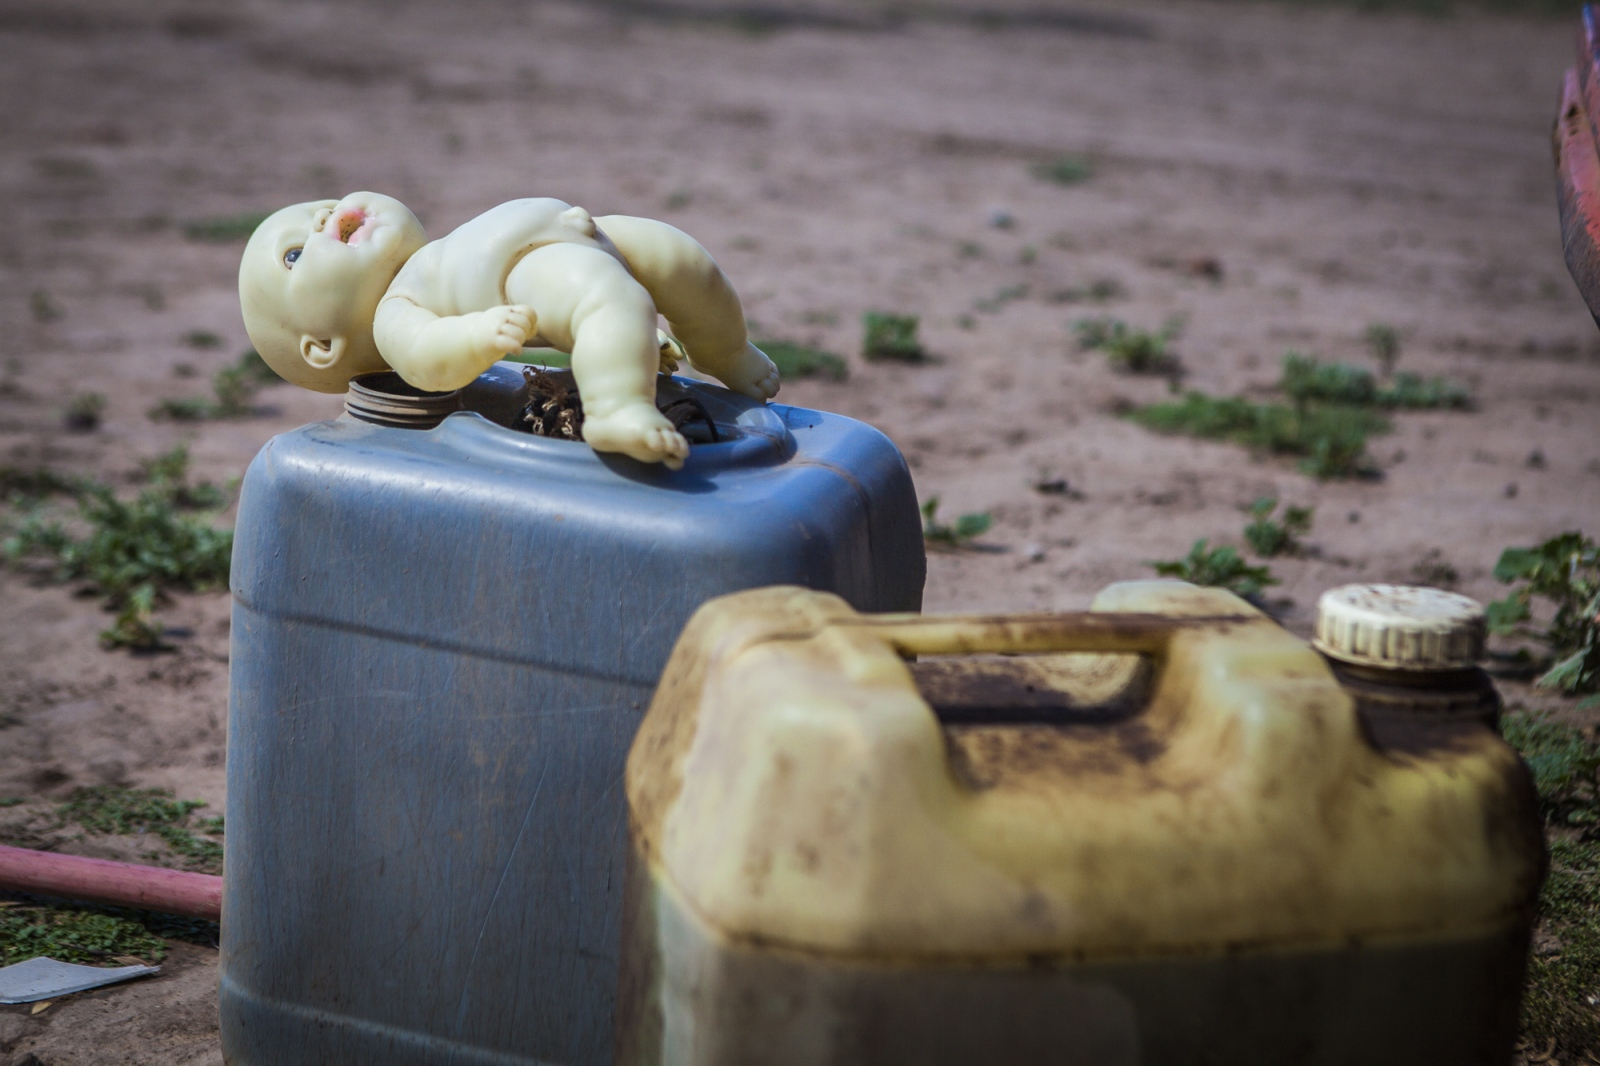 A doll sits on top of containers with gasoline. Children play freely in the Guaycurú Indigenous Community, but sometimes dangerous are closer than you will imagine.